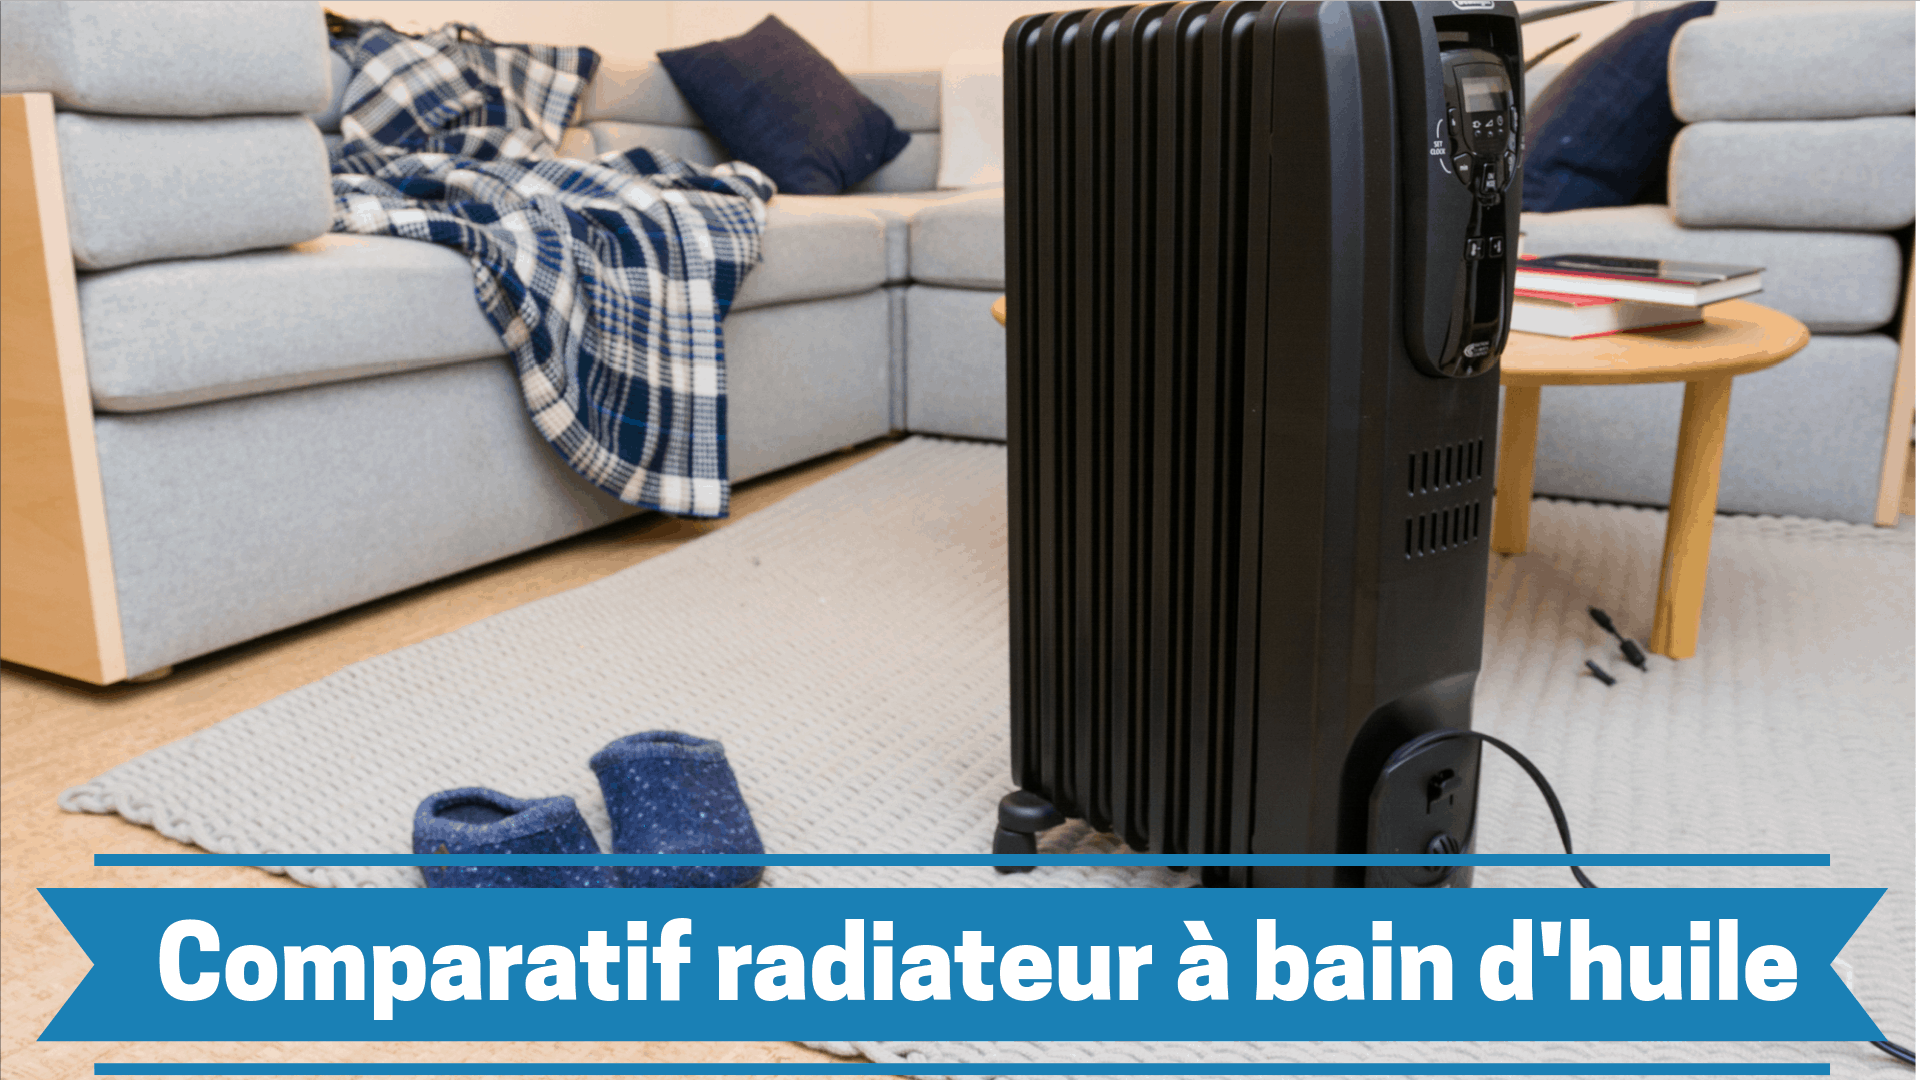 meilleur radiateur bain d 39 huile avis comparatif prix maj 2018. Black Bedroom Furniture Sets. Home Design Ideas